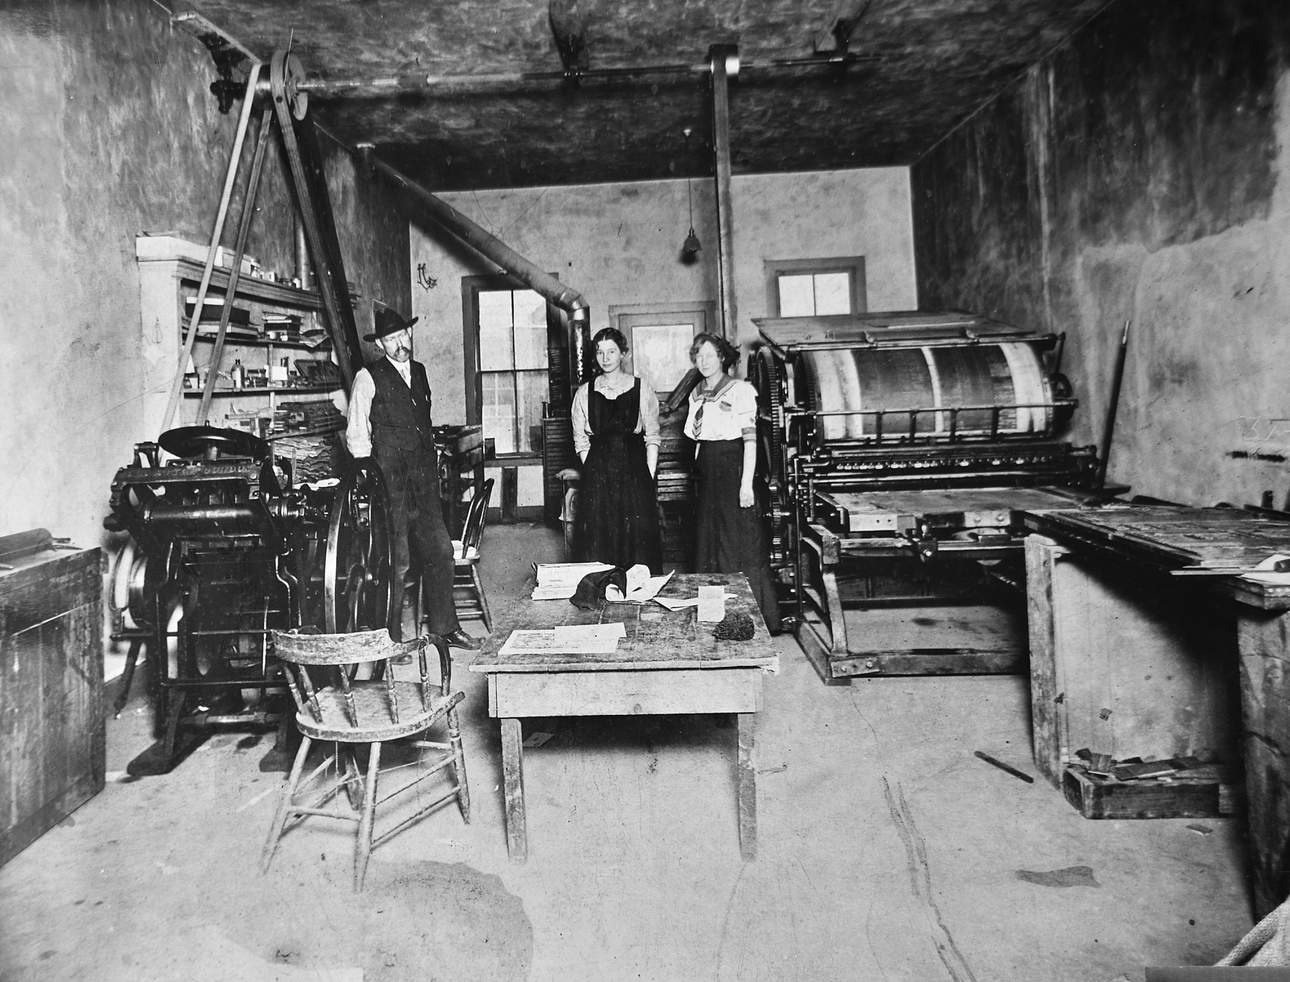 Two women and man stand in old printing press in Mancos.